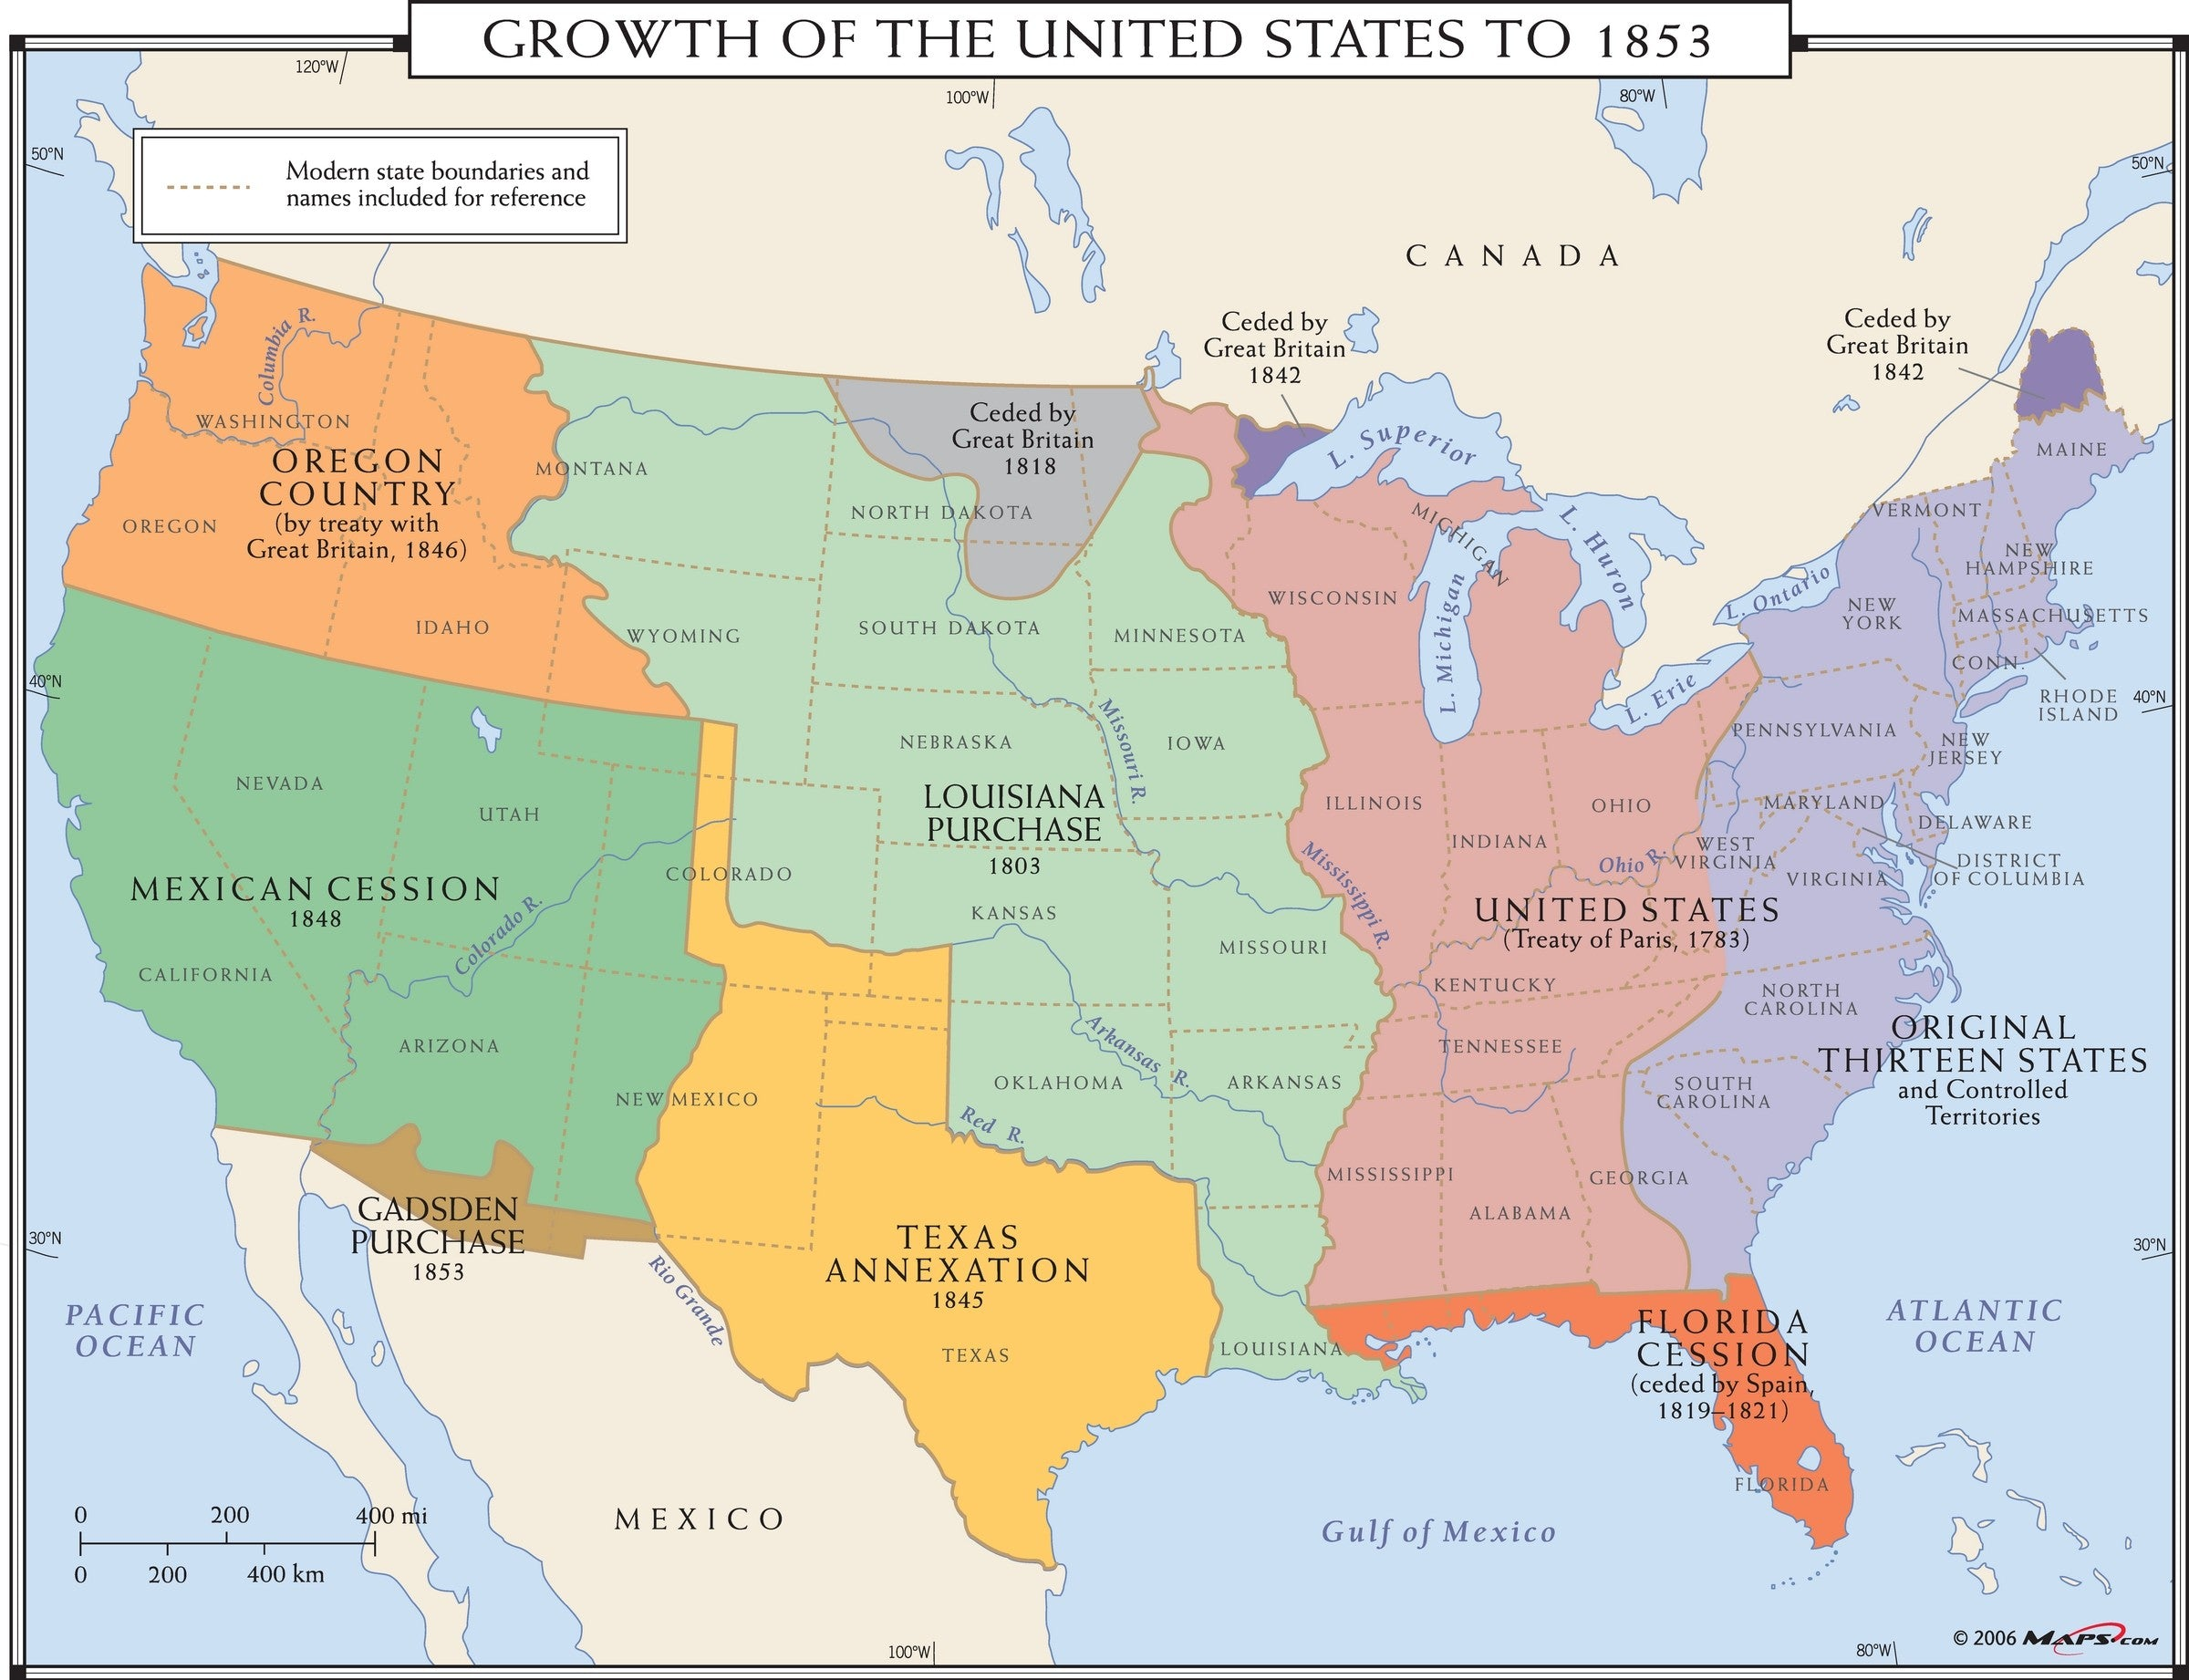 Us Map Of 1853 Growth of the United States to 1853 Map | Maps.com.com